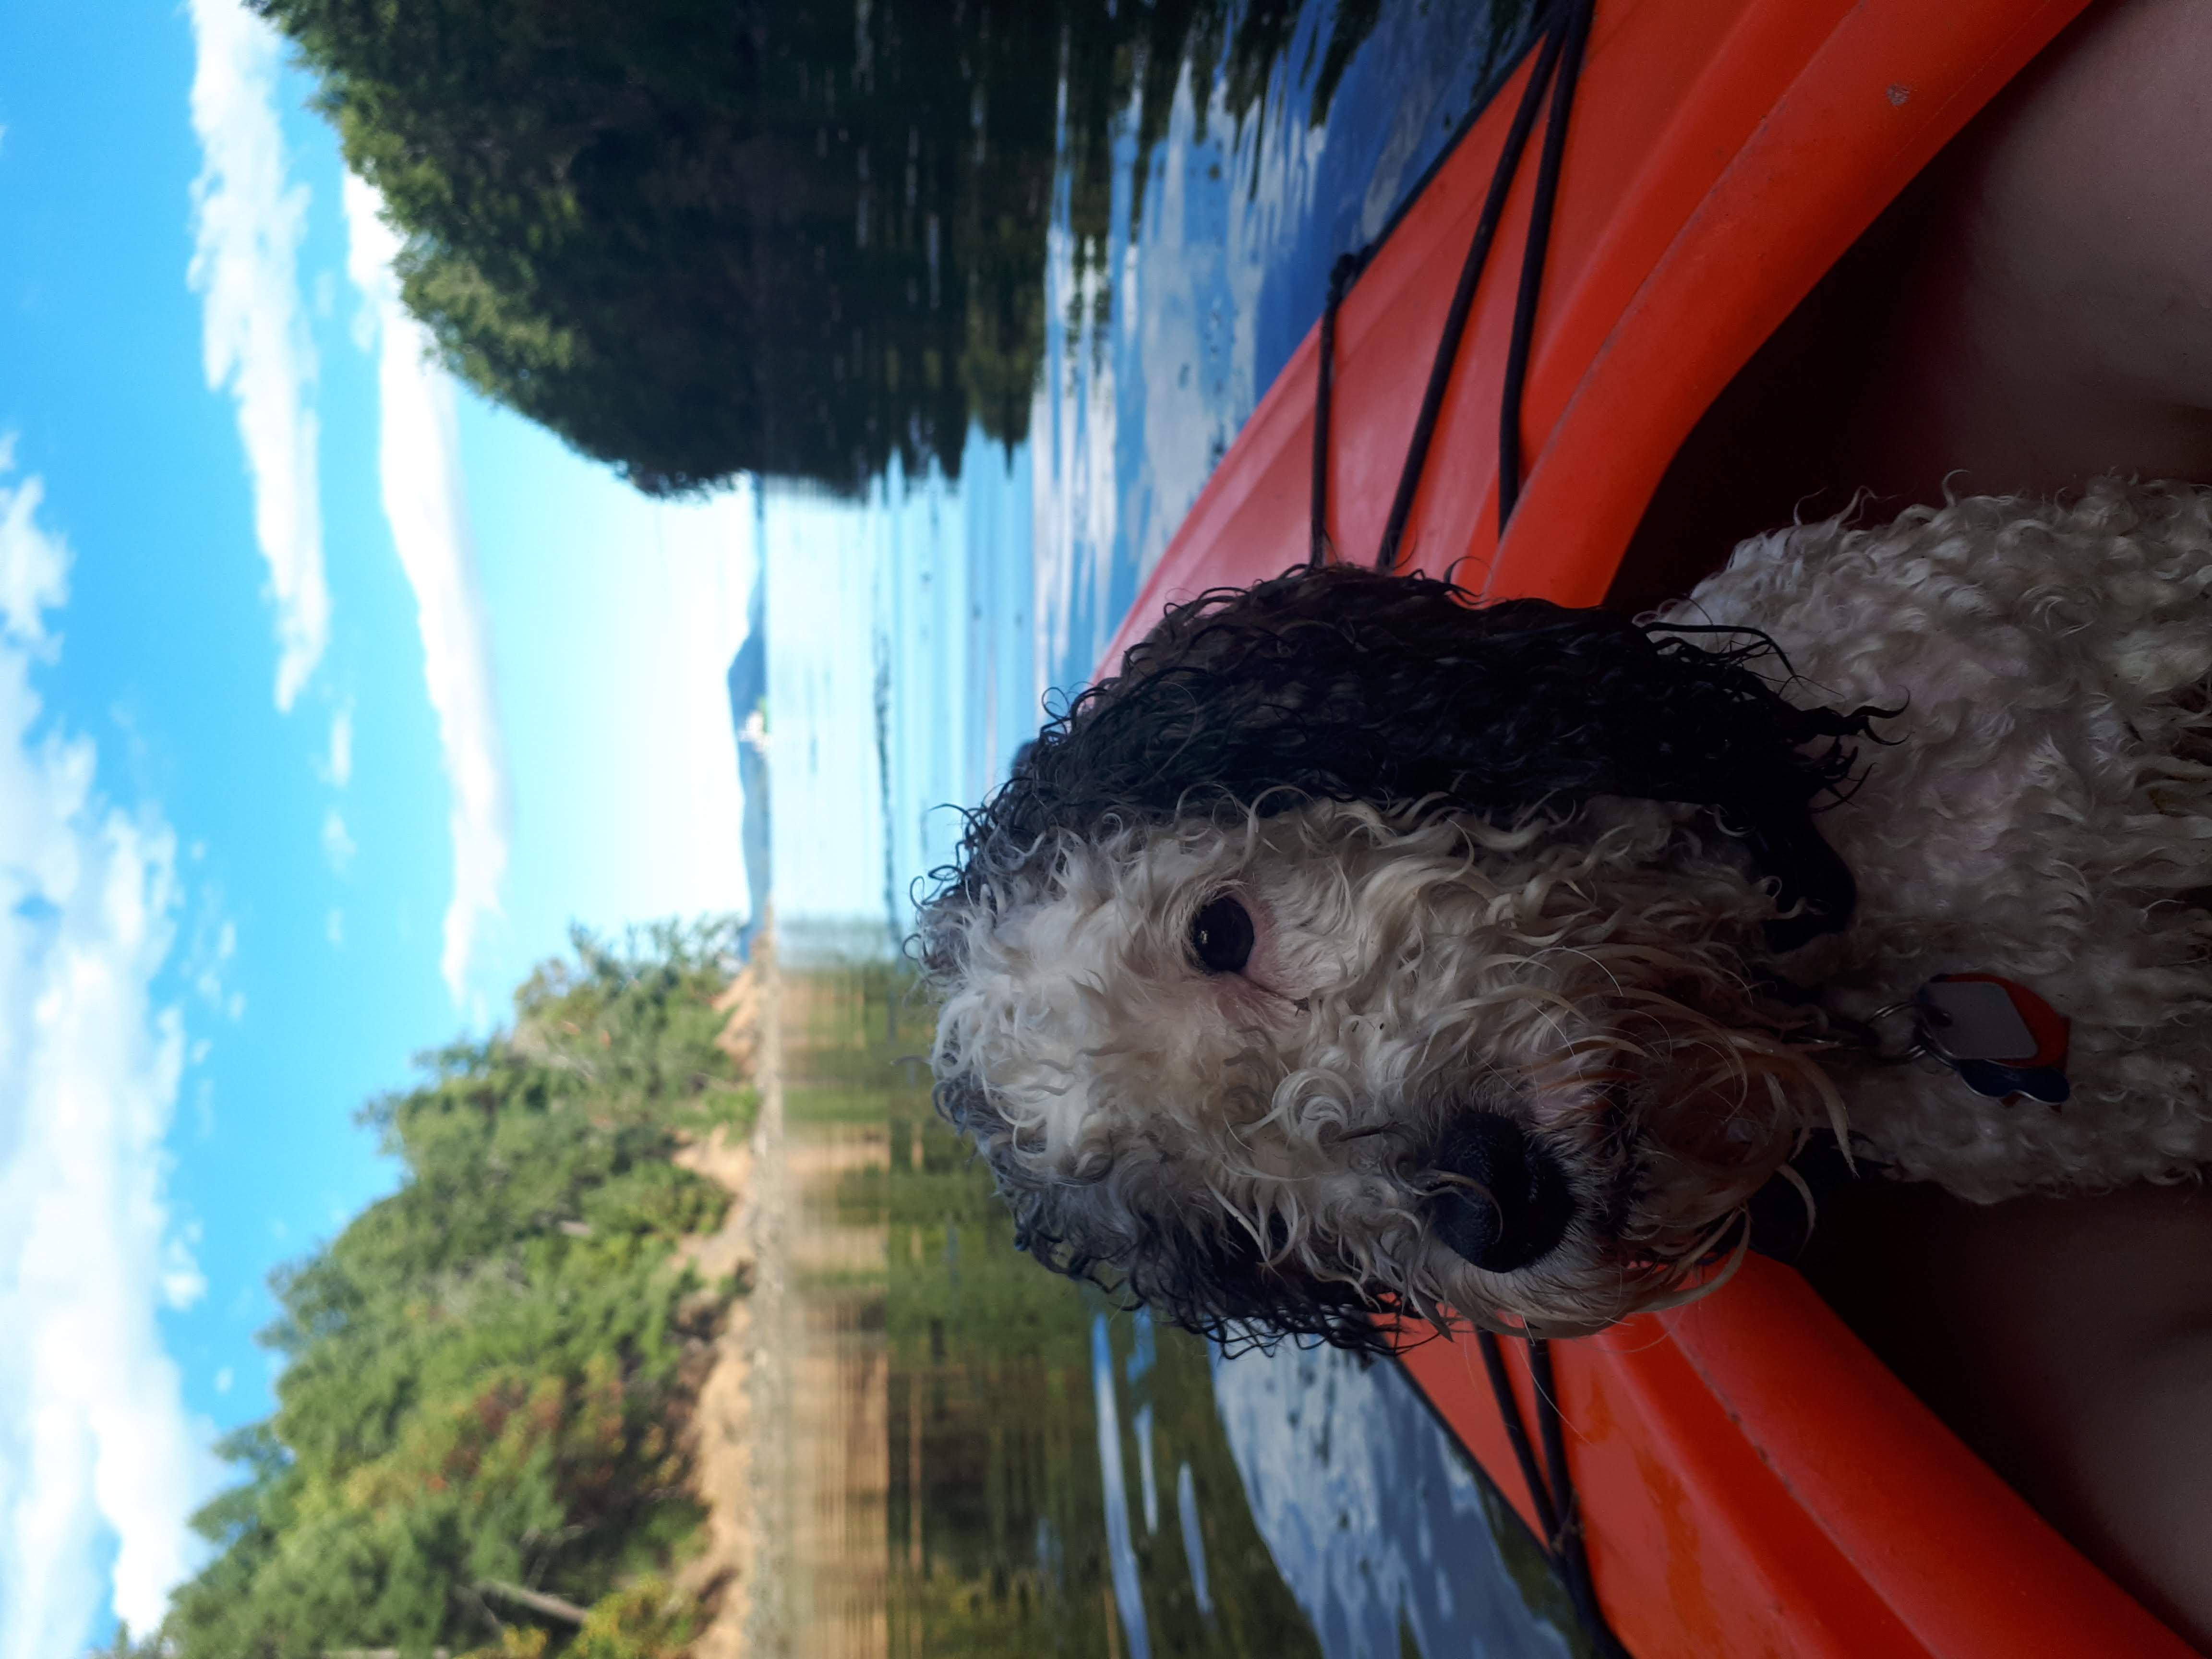 My dog at the end of the Salt Spring Island kayaking expedition, wet, sitting in the orange kayak with views of the Pacific Ocean and the bay behind him